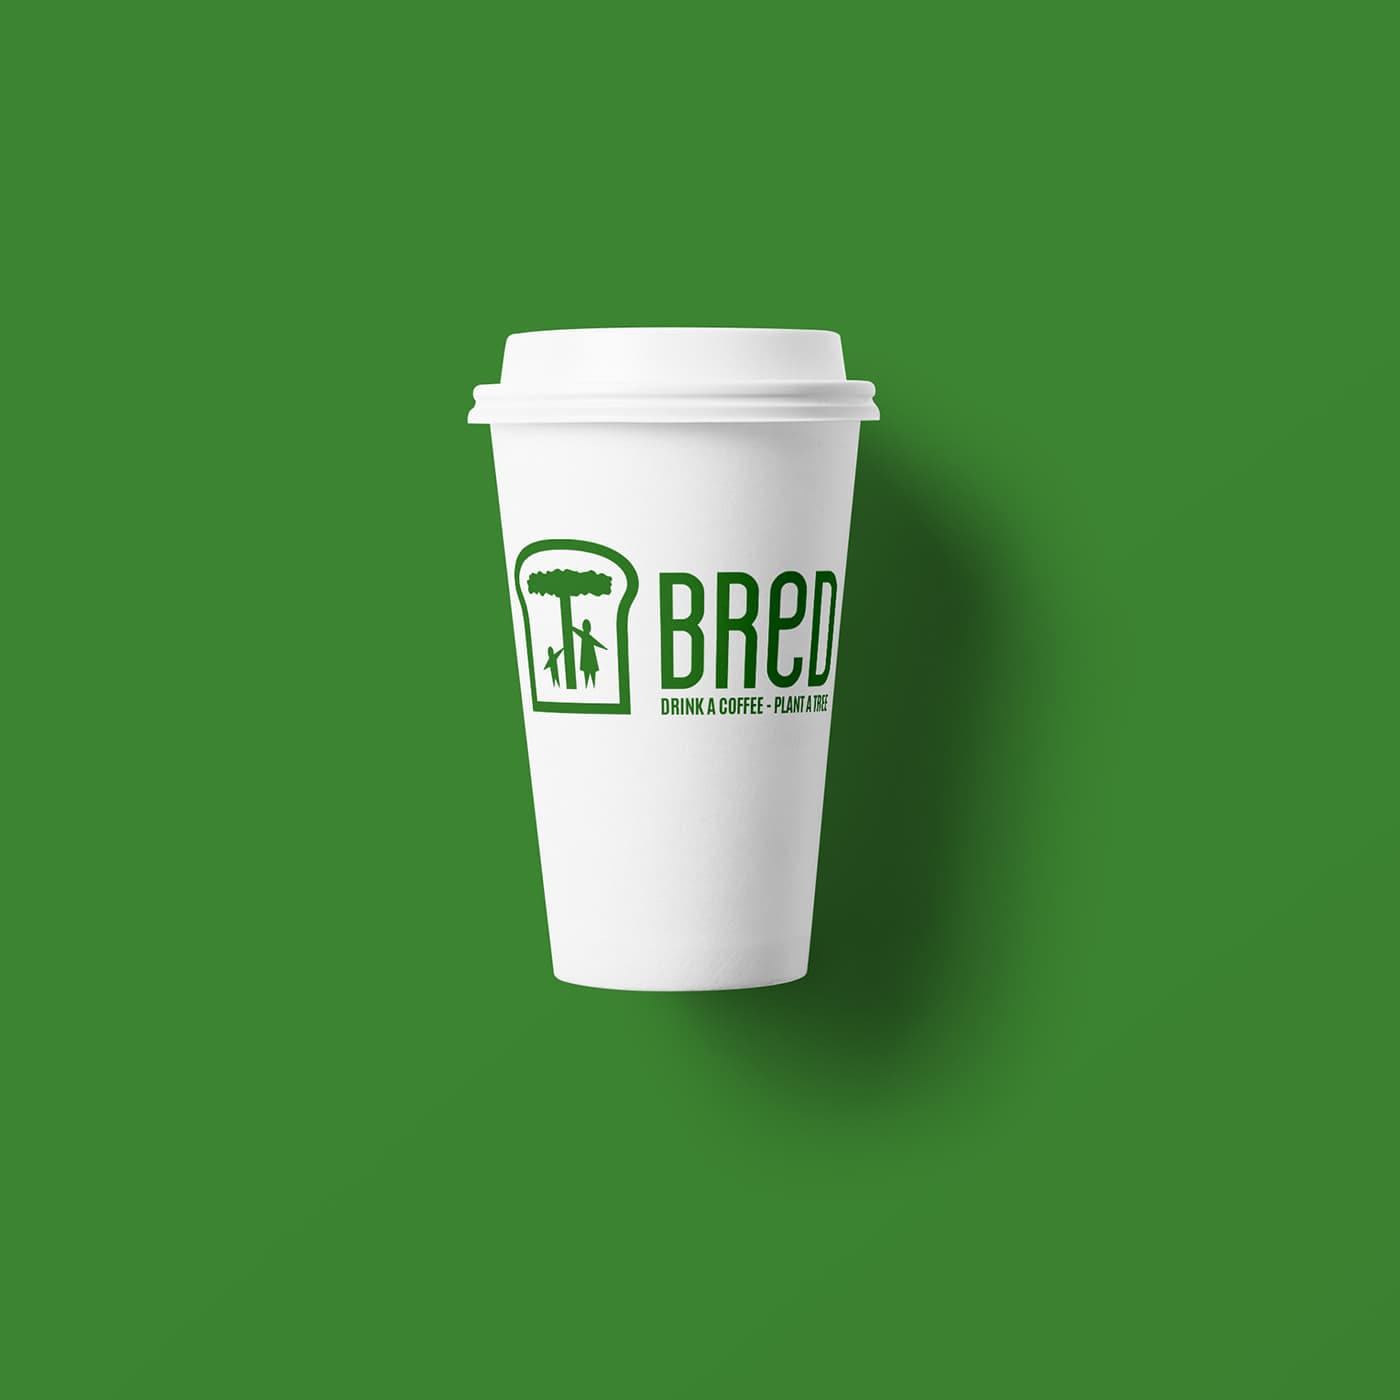 A white takeout coffee cup with green writing on it that reads: Bred - drink a coffee, plant a tree